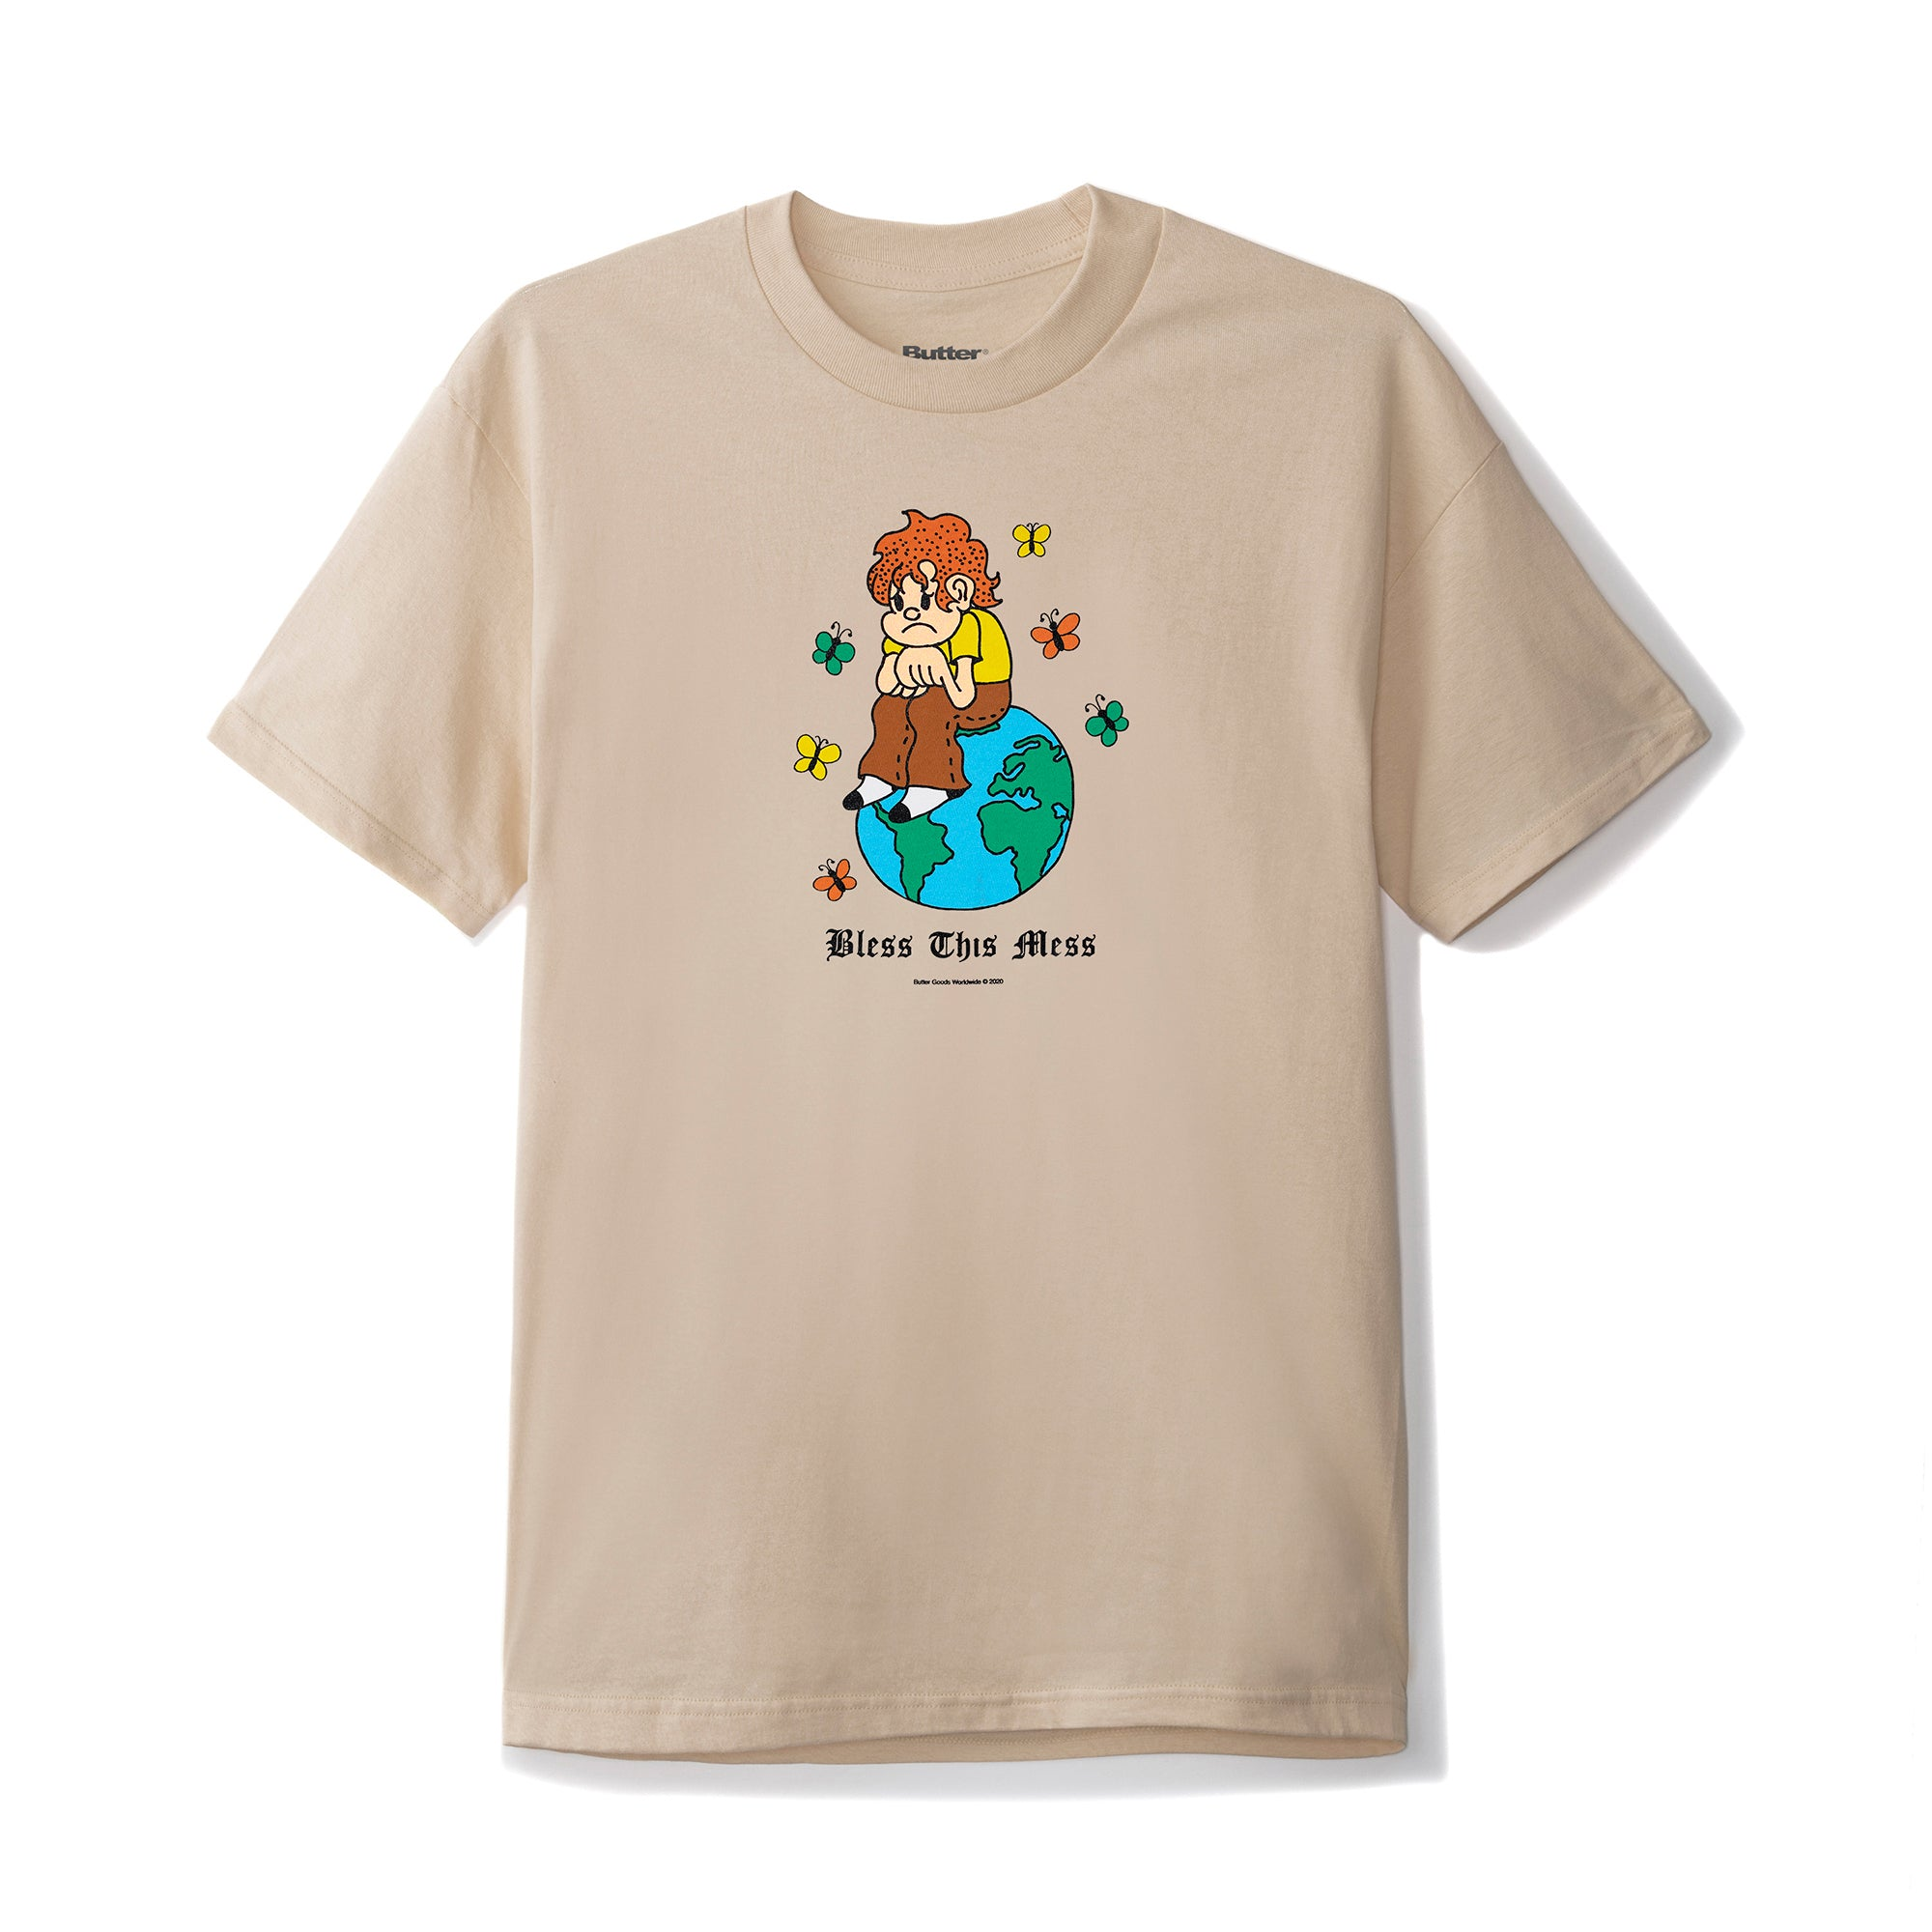 Butter Goods Bless This Mess Tee Product Photo #1